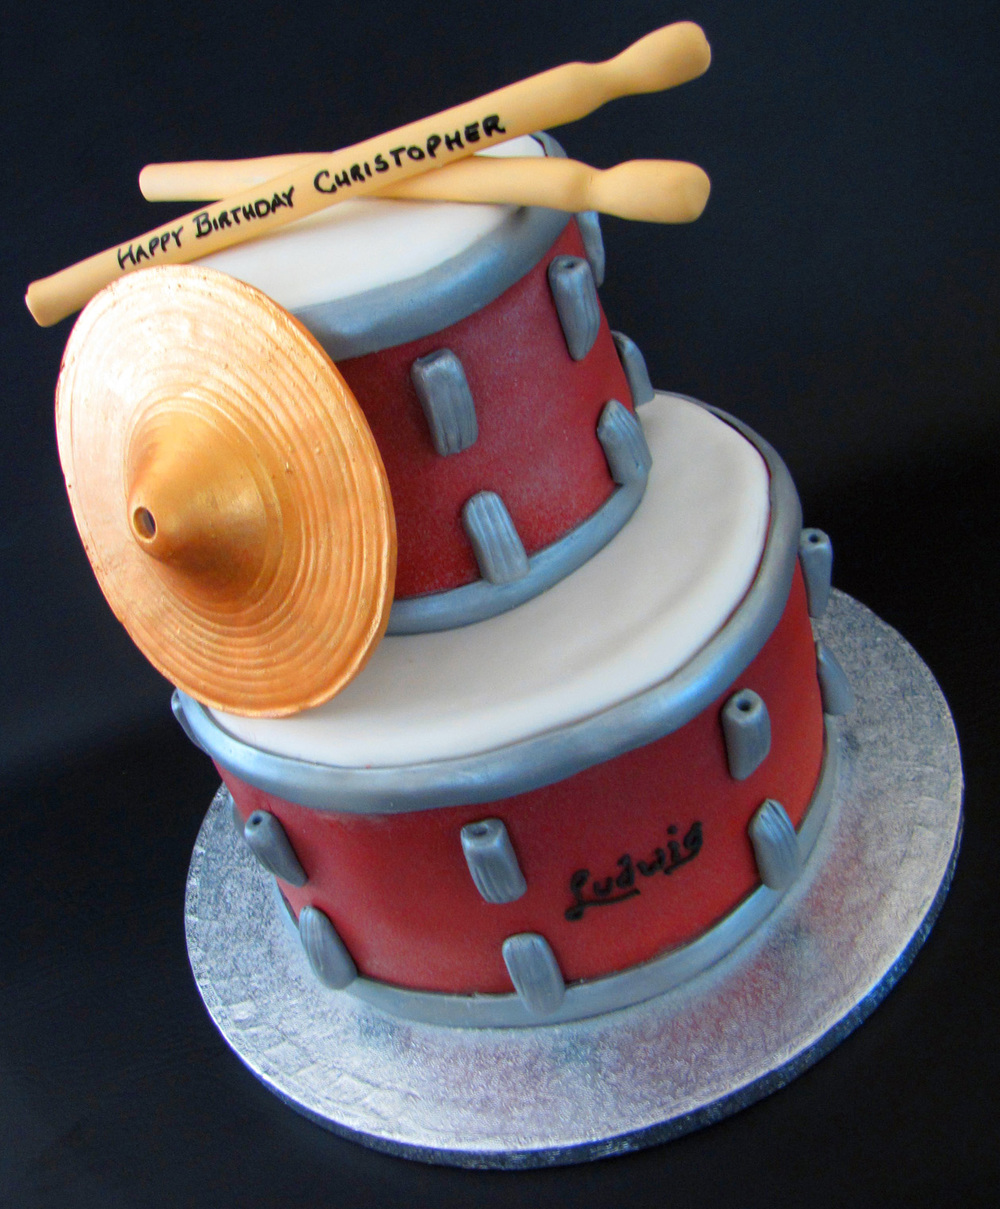 It's all about the Drums Birthday Cake